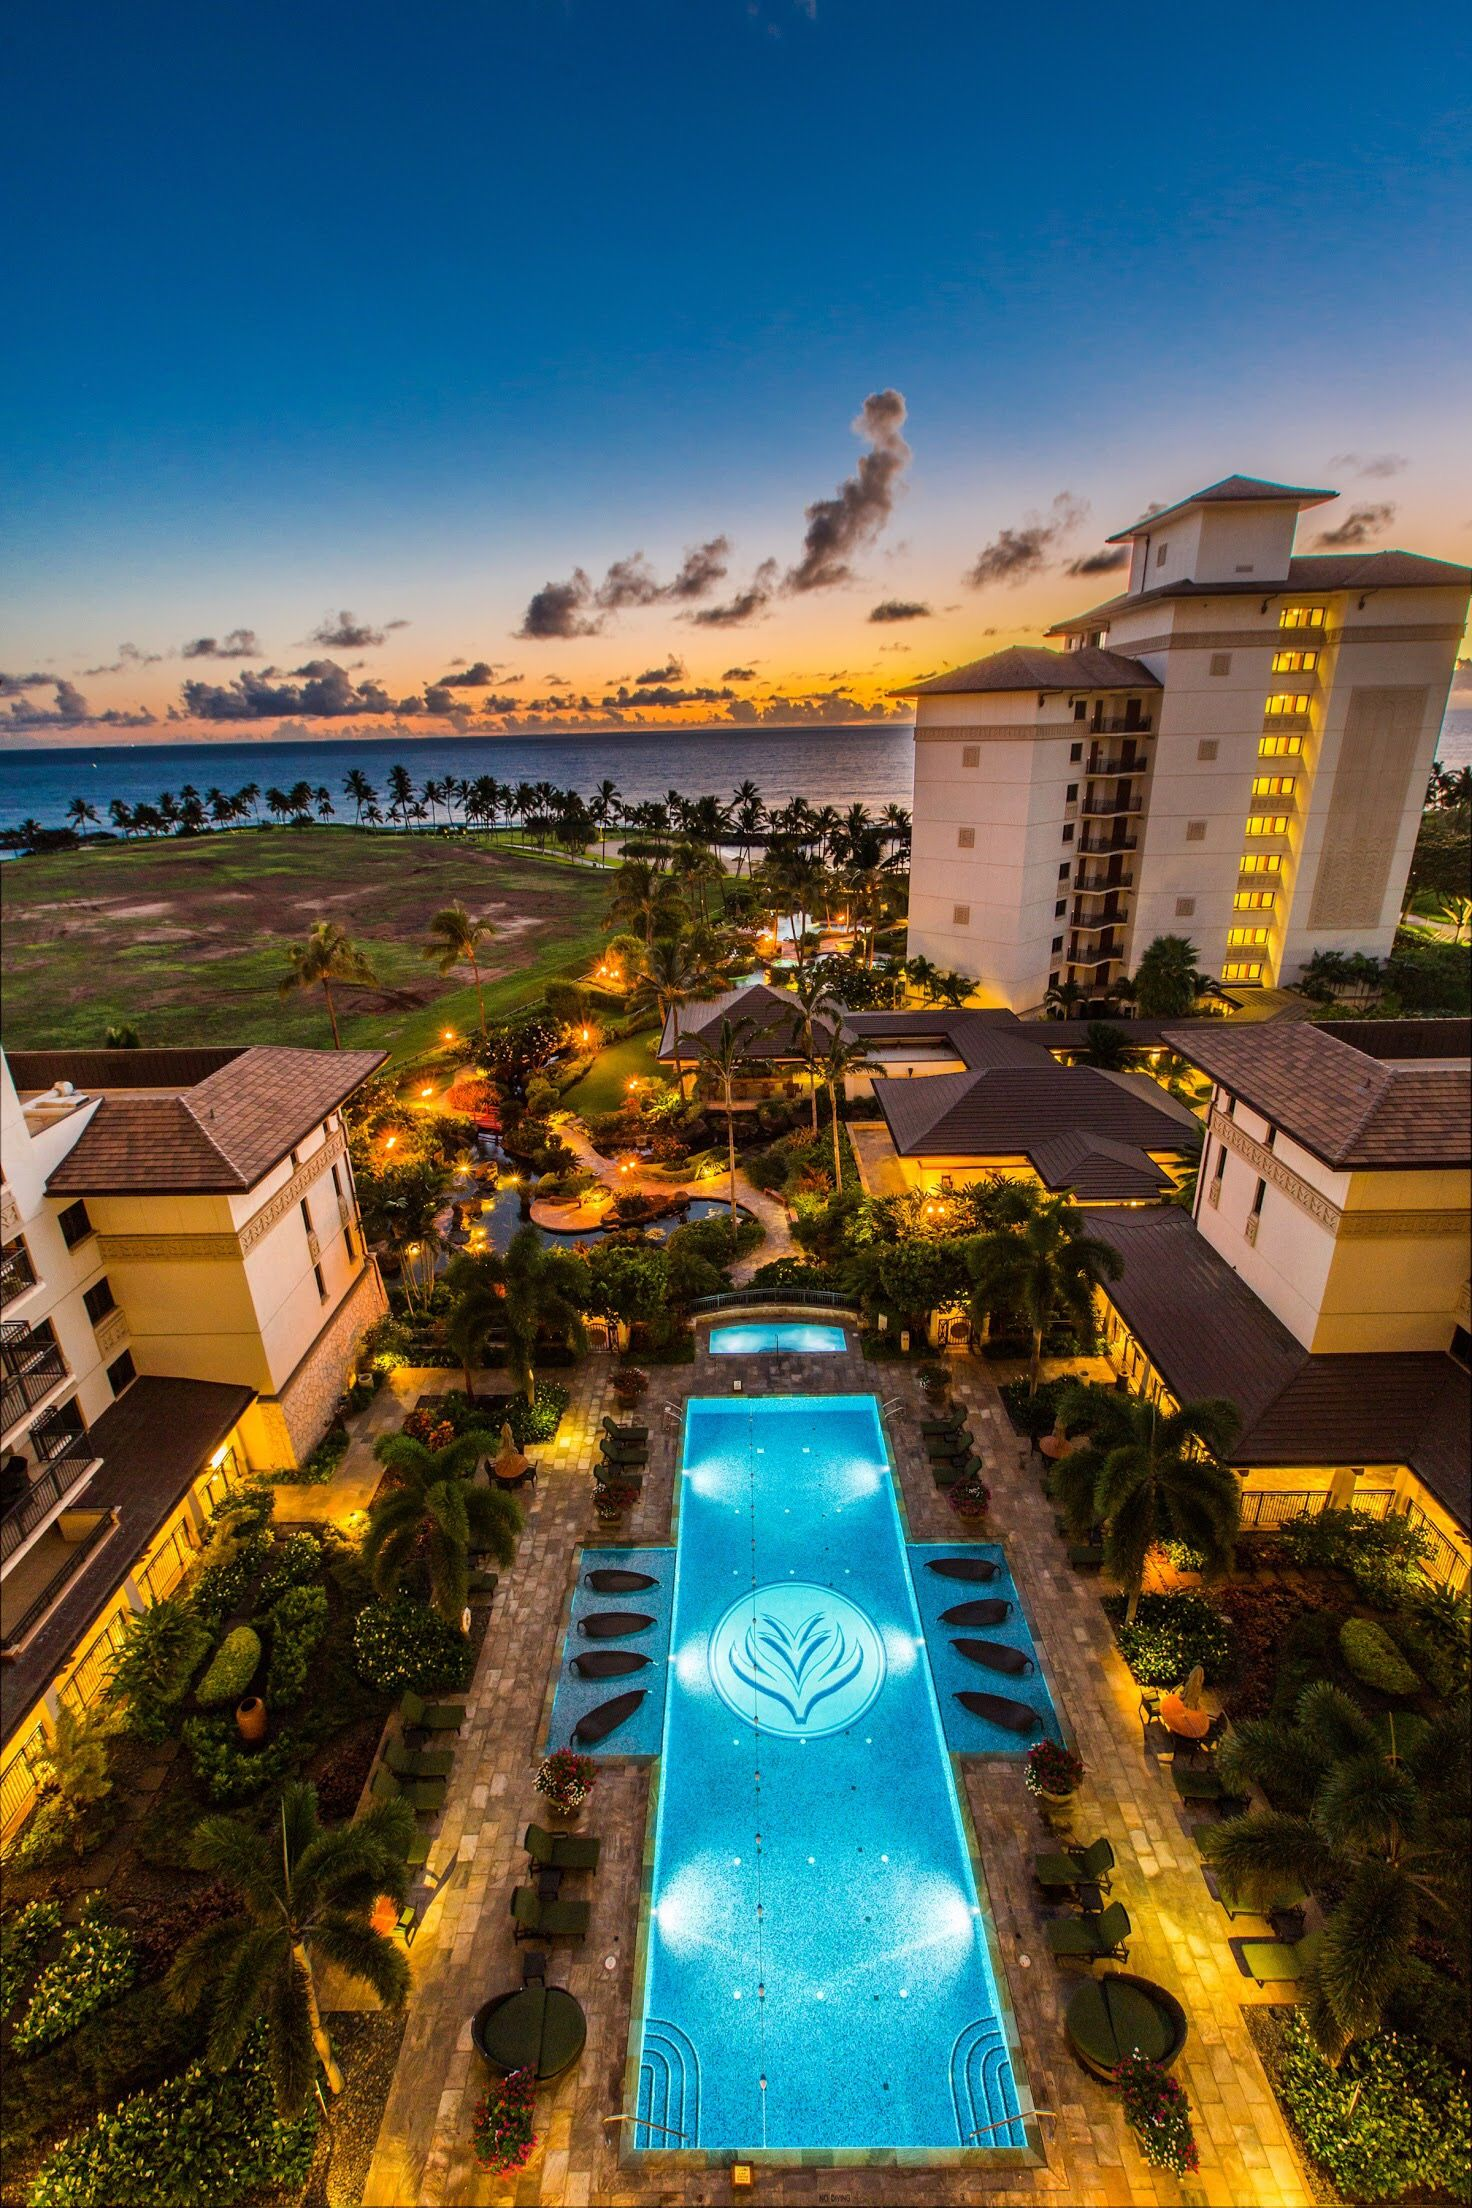 23BD Vacation rental condos at the Beach Villas Resort in